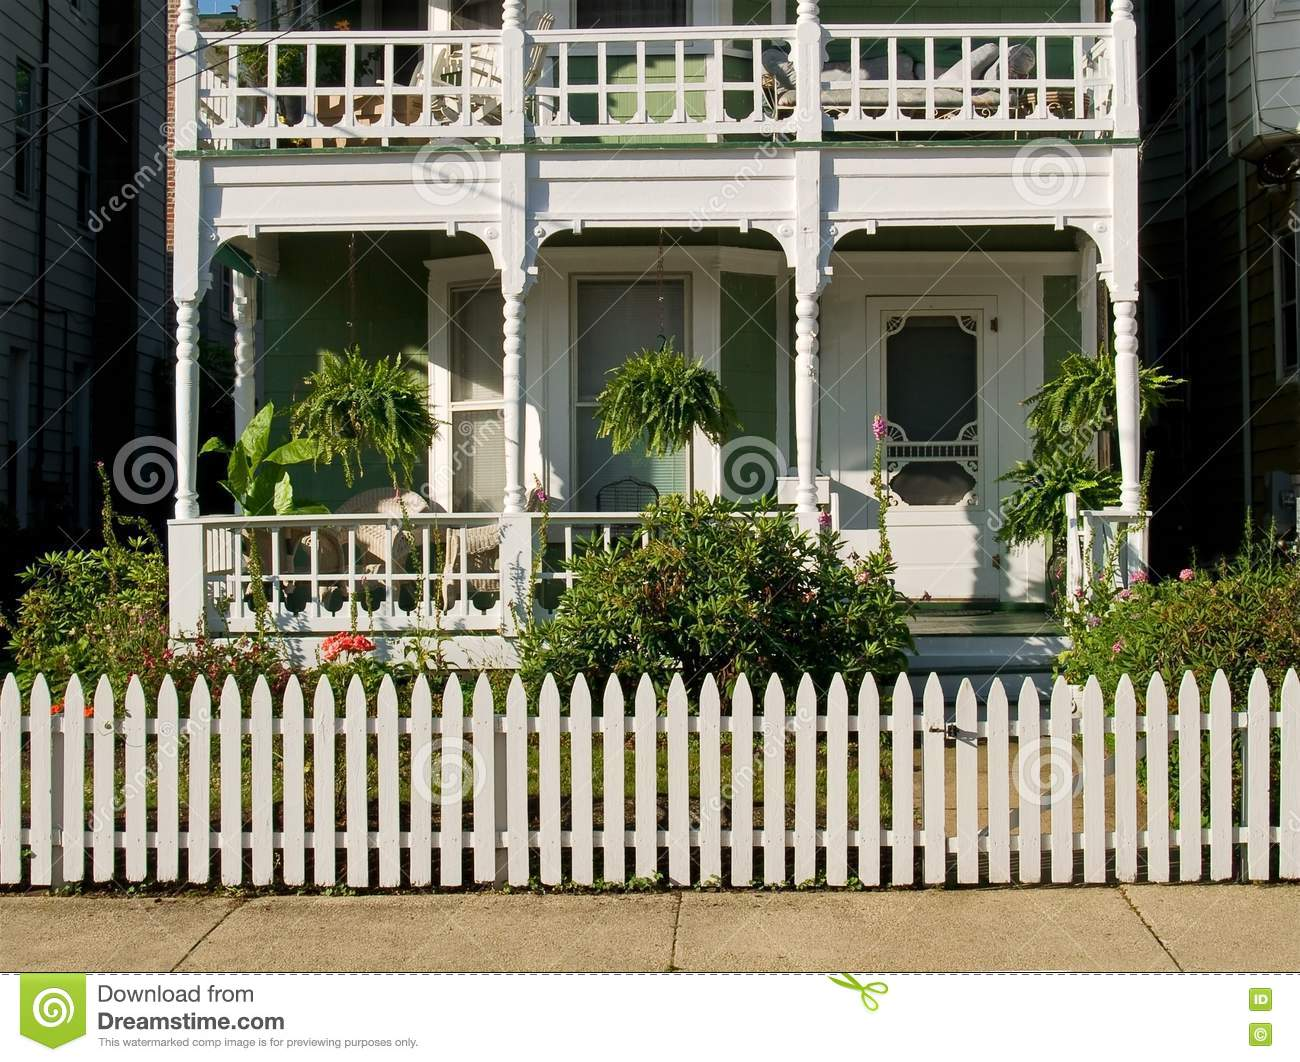 Free Stock Images  Home Sweet Home Picture. Image  5656579 930a51dddf